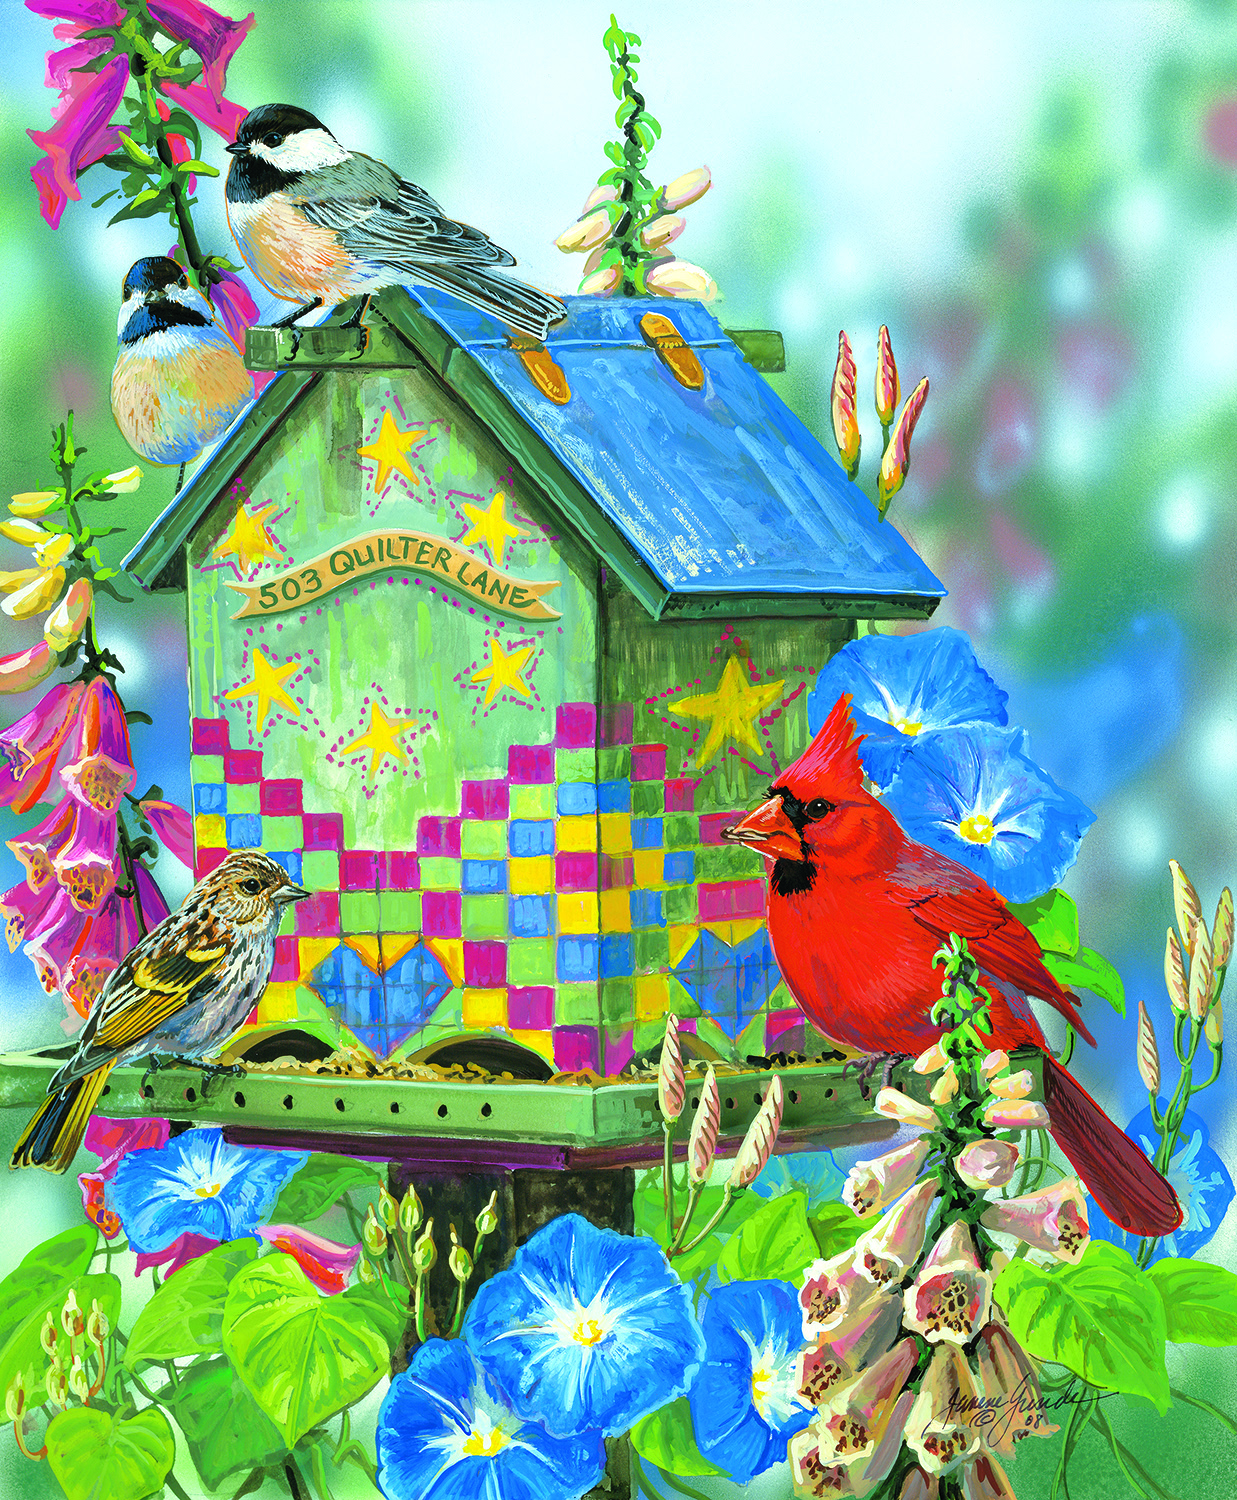 503 Quilters Lane 1000 pc Jigsaw Puzzle by SunsOut